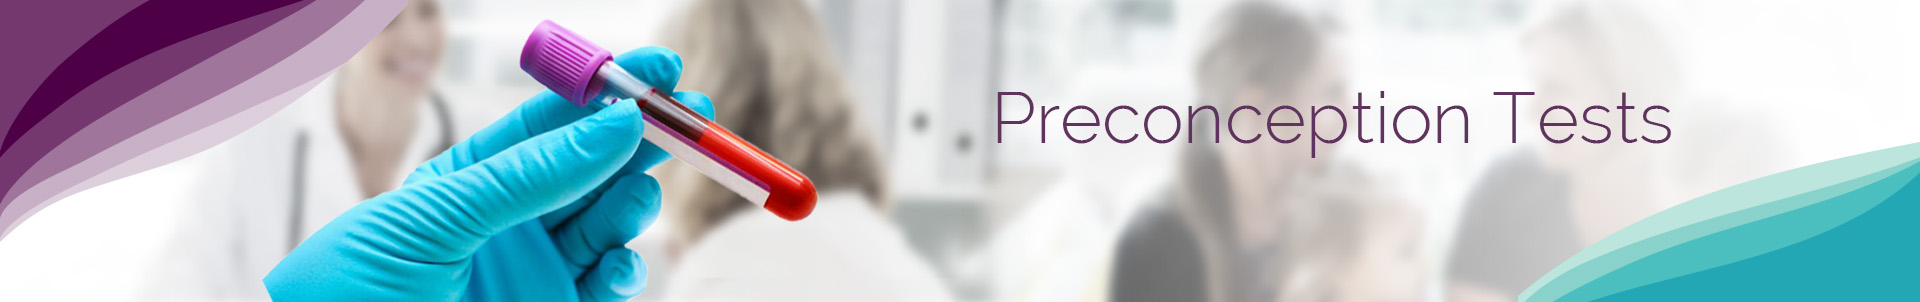 Preconception Tests at Apollo Cradle